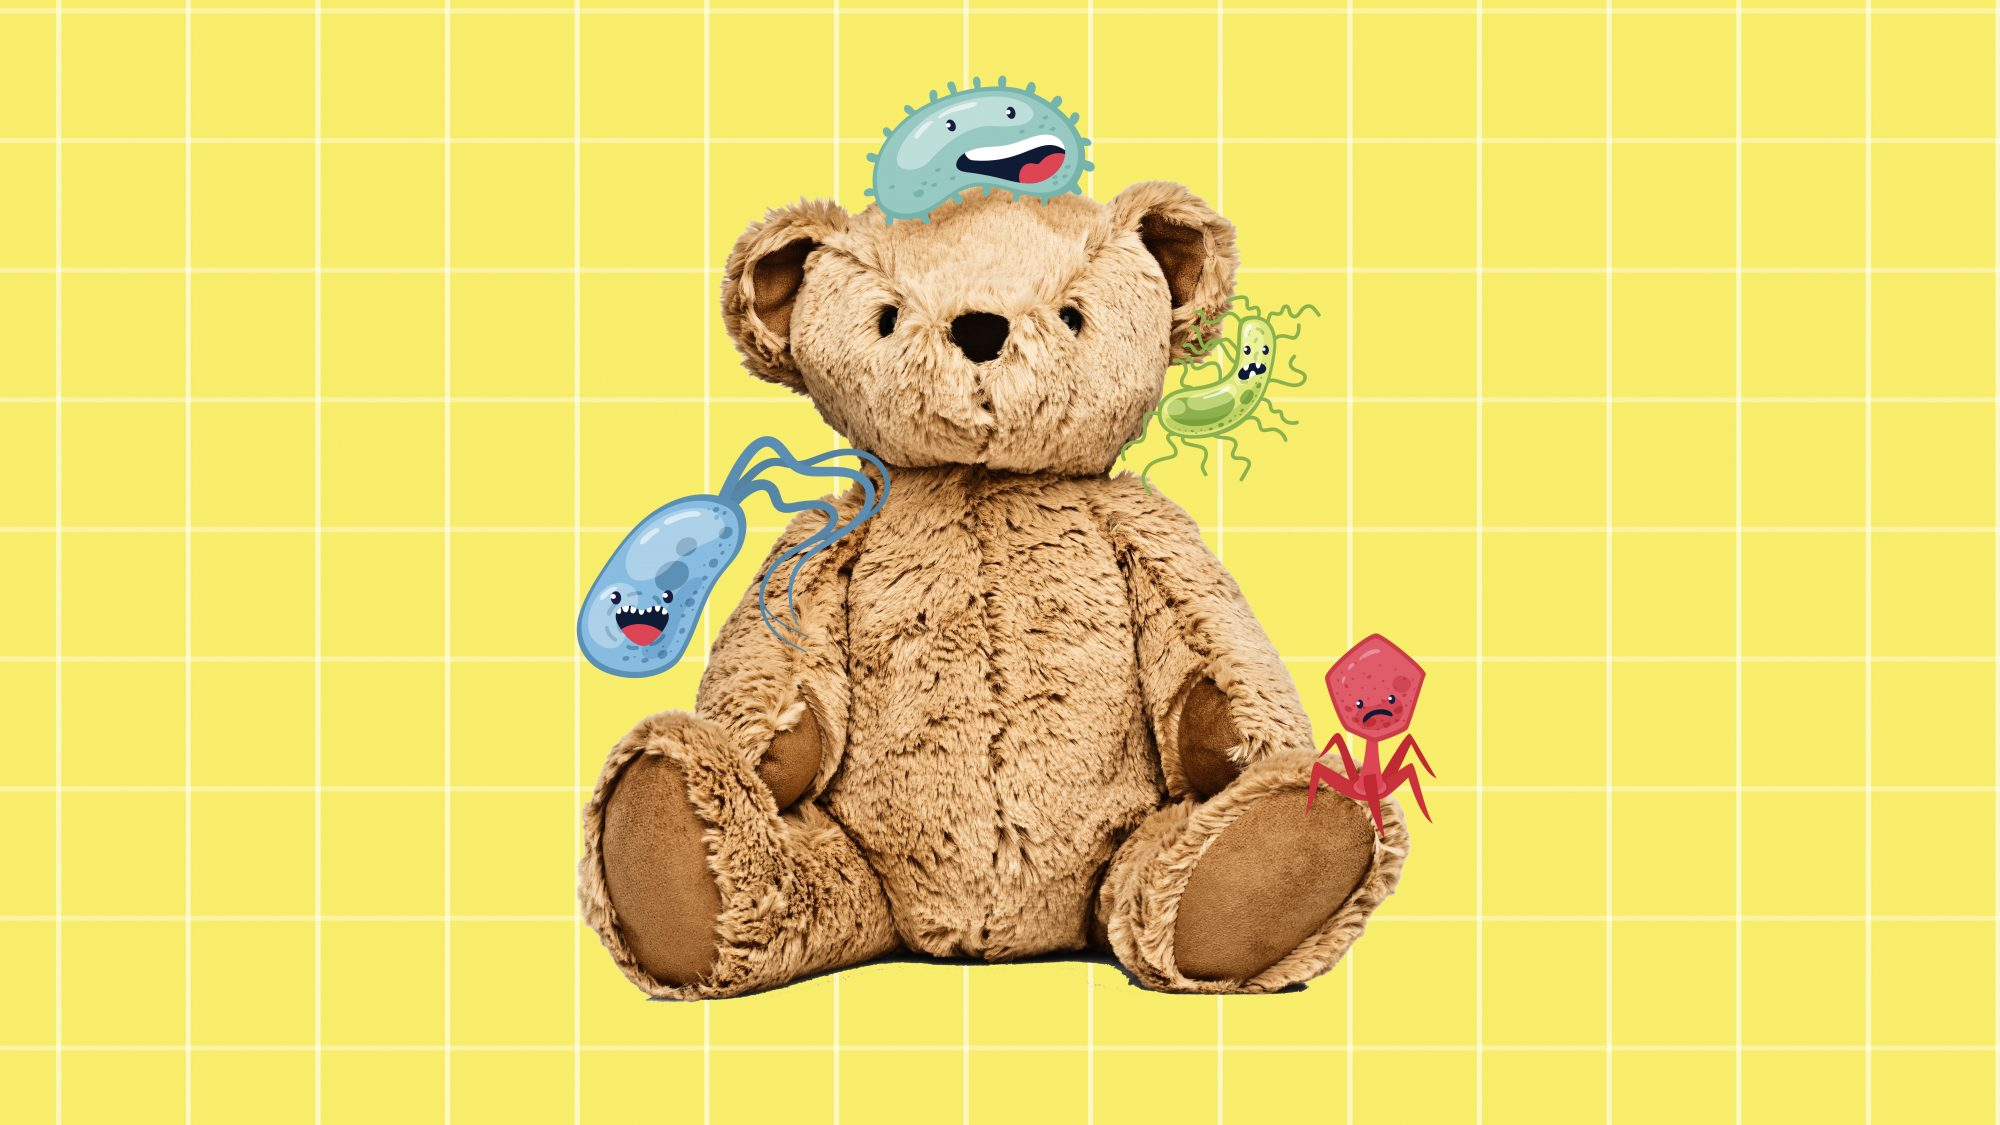 How to Clean Stuffed Animals, stuffed teddy bear with germs